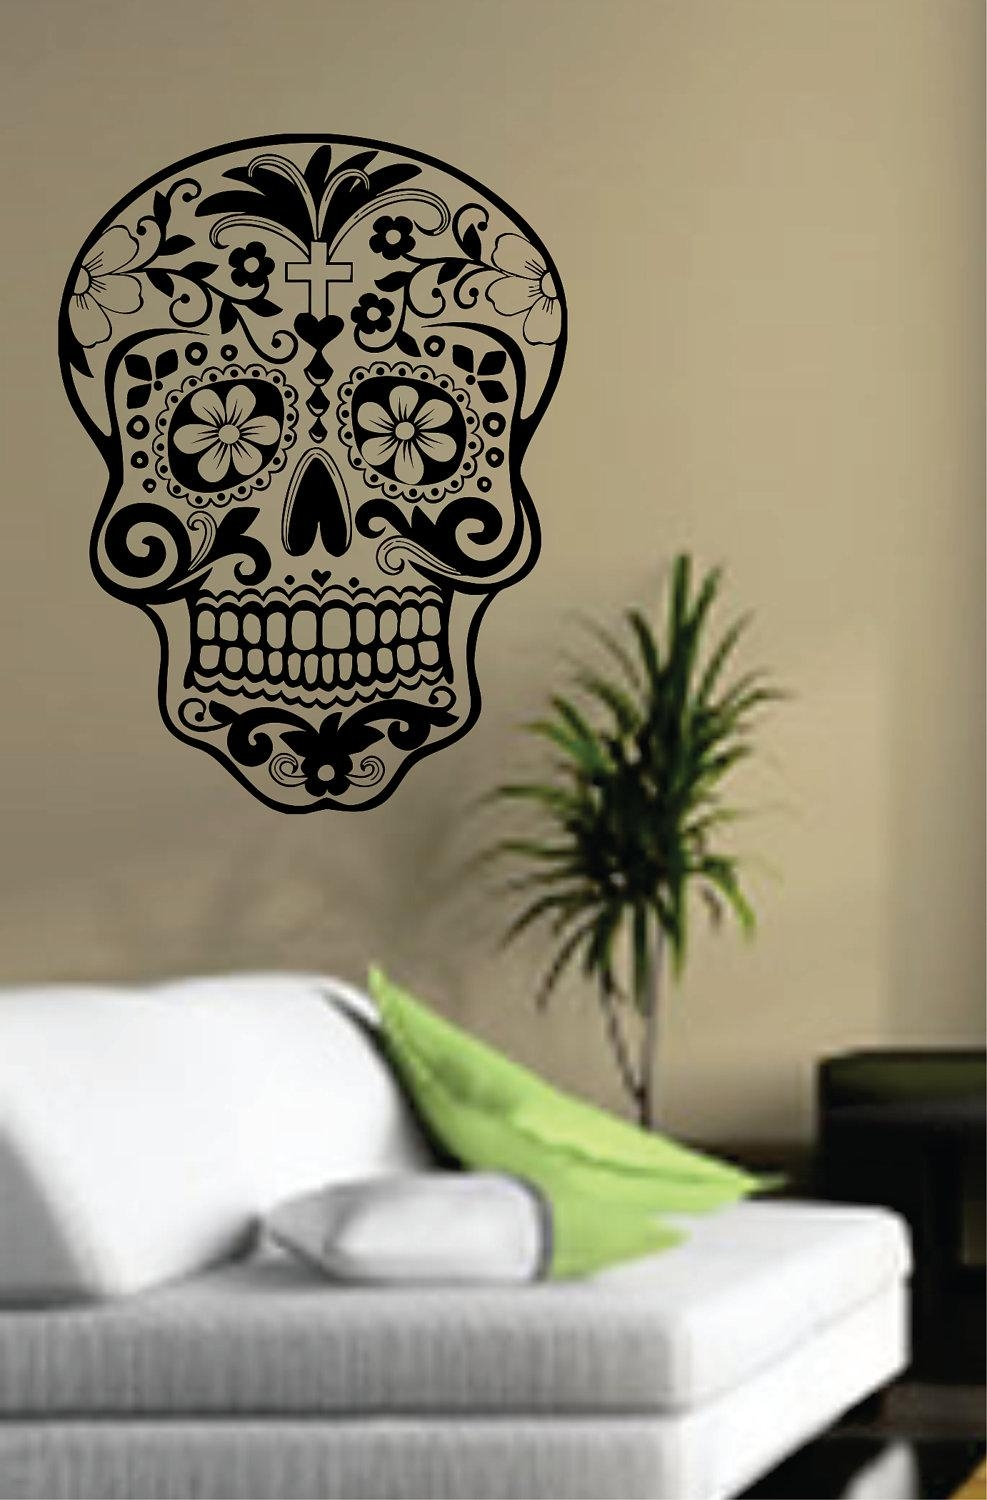 Vinyl Sticker Wall Art | Wallartideas With Regard To Tim Burton Wall Decals (View 15 of 20)